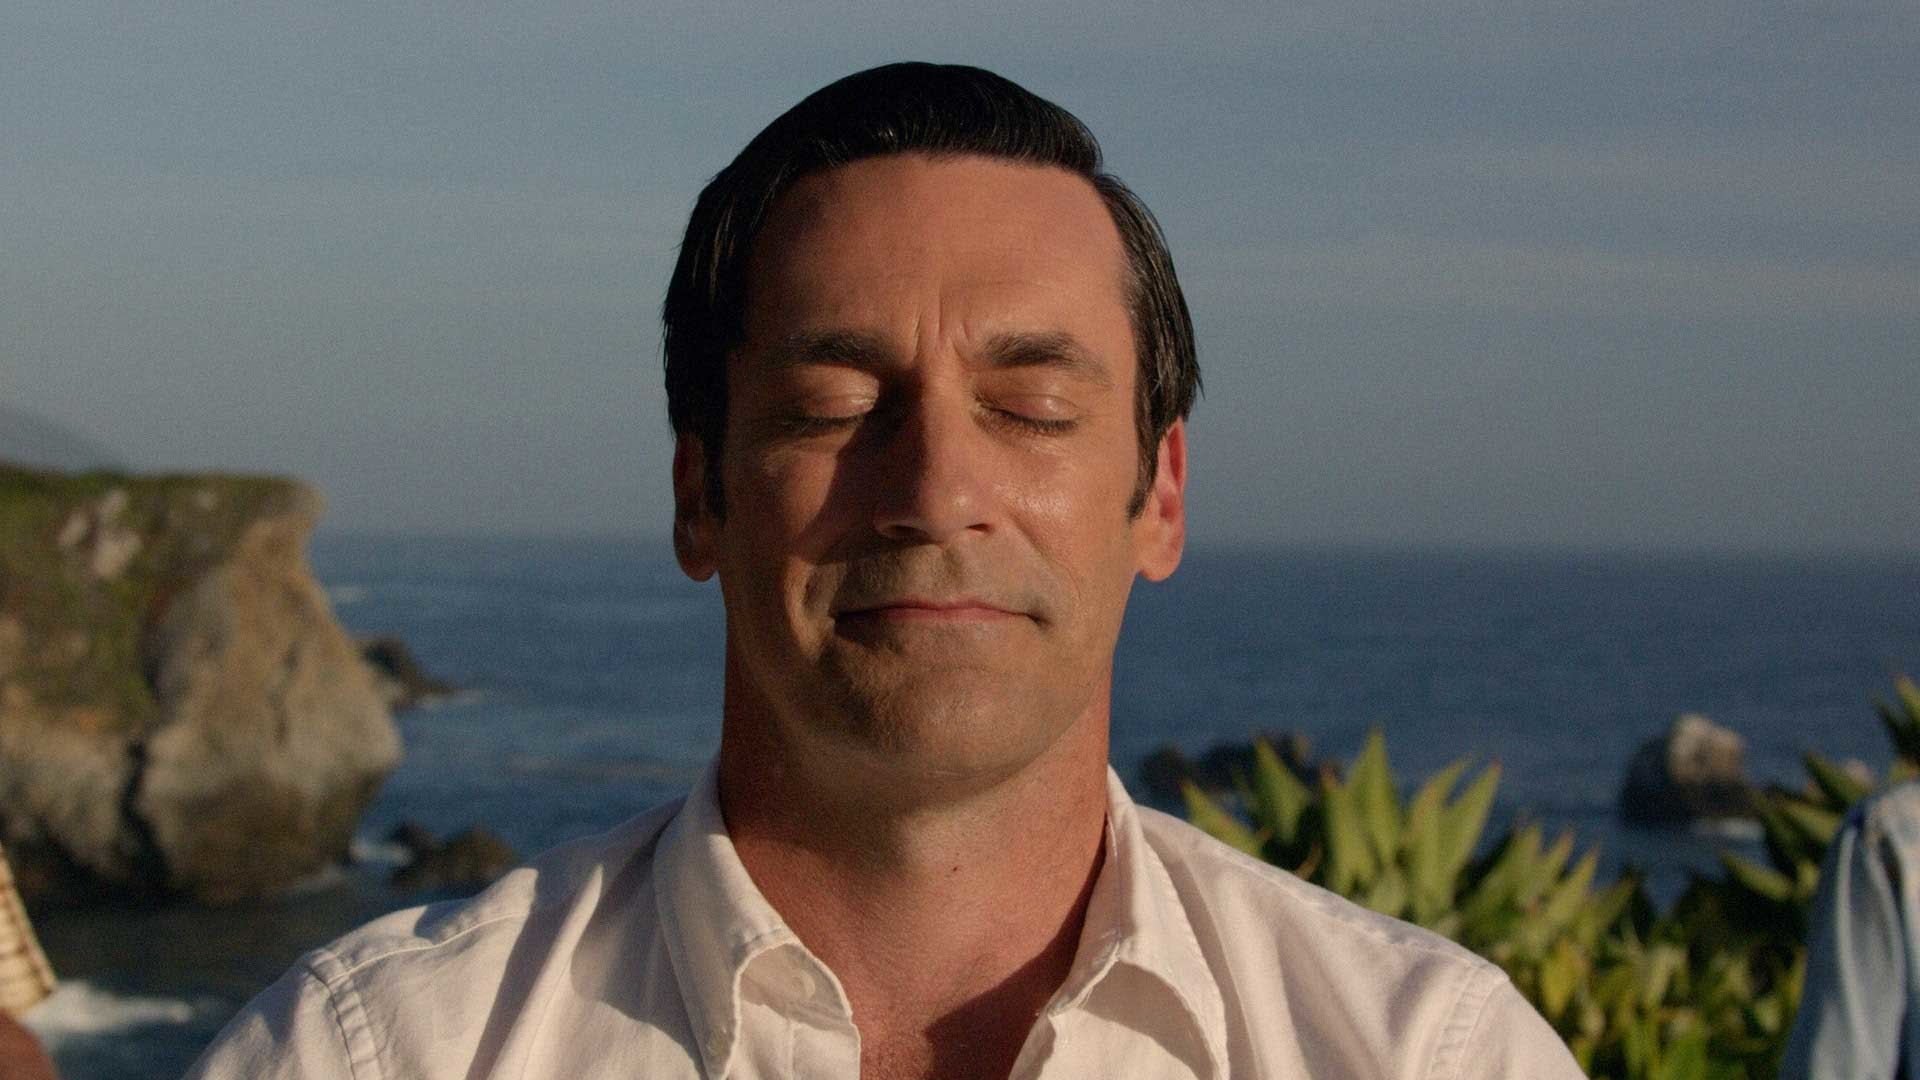 Res: 1920x1080, Jon Hamm as Don Draper - Season 7, Episode 14